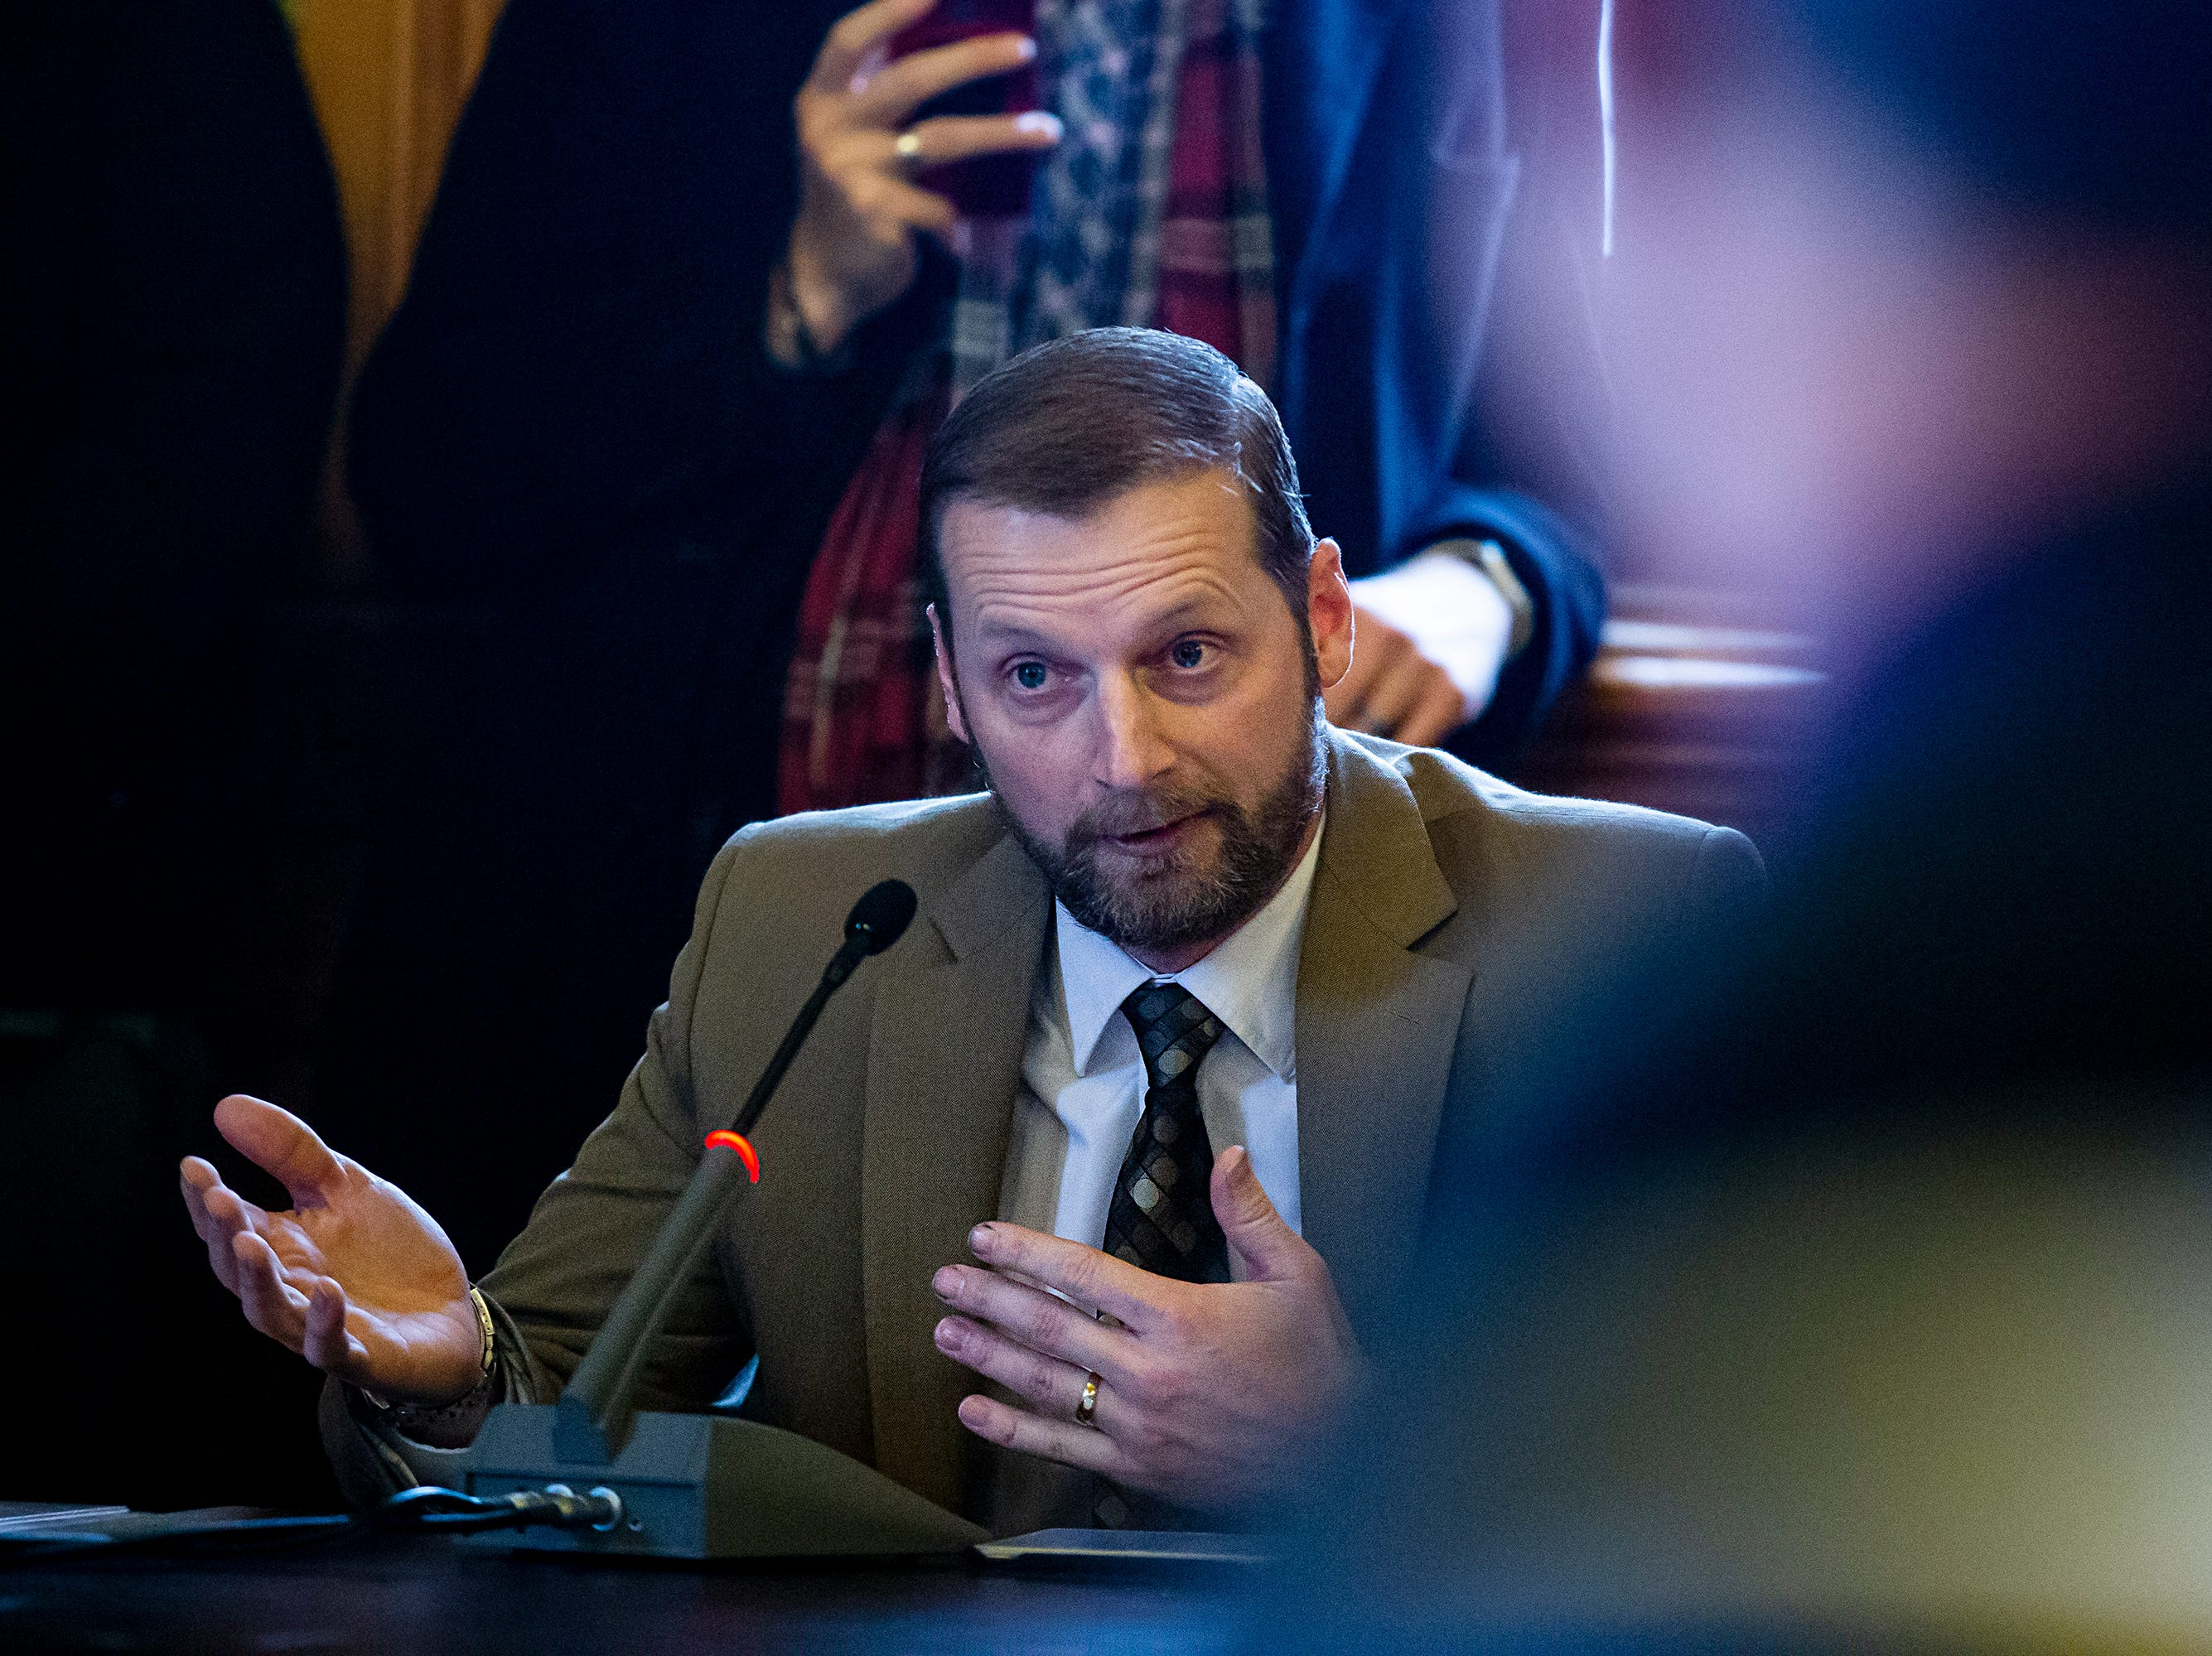 A.J. Potter, Pastor at Pleasantville Baptist Church, testifies in support of a joint resolution proposing the addition of language to the Iowa Constitution that would specify that the state does not secure or protect a right to abortion, Wednesday, Feb. 6, 2019, inside the Iowa Capitol in Des Moines.